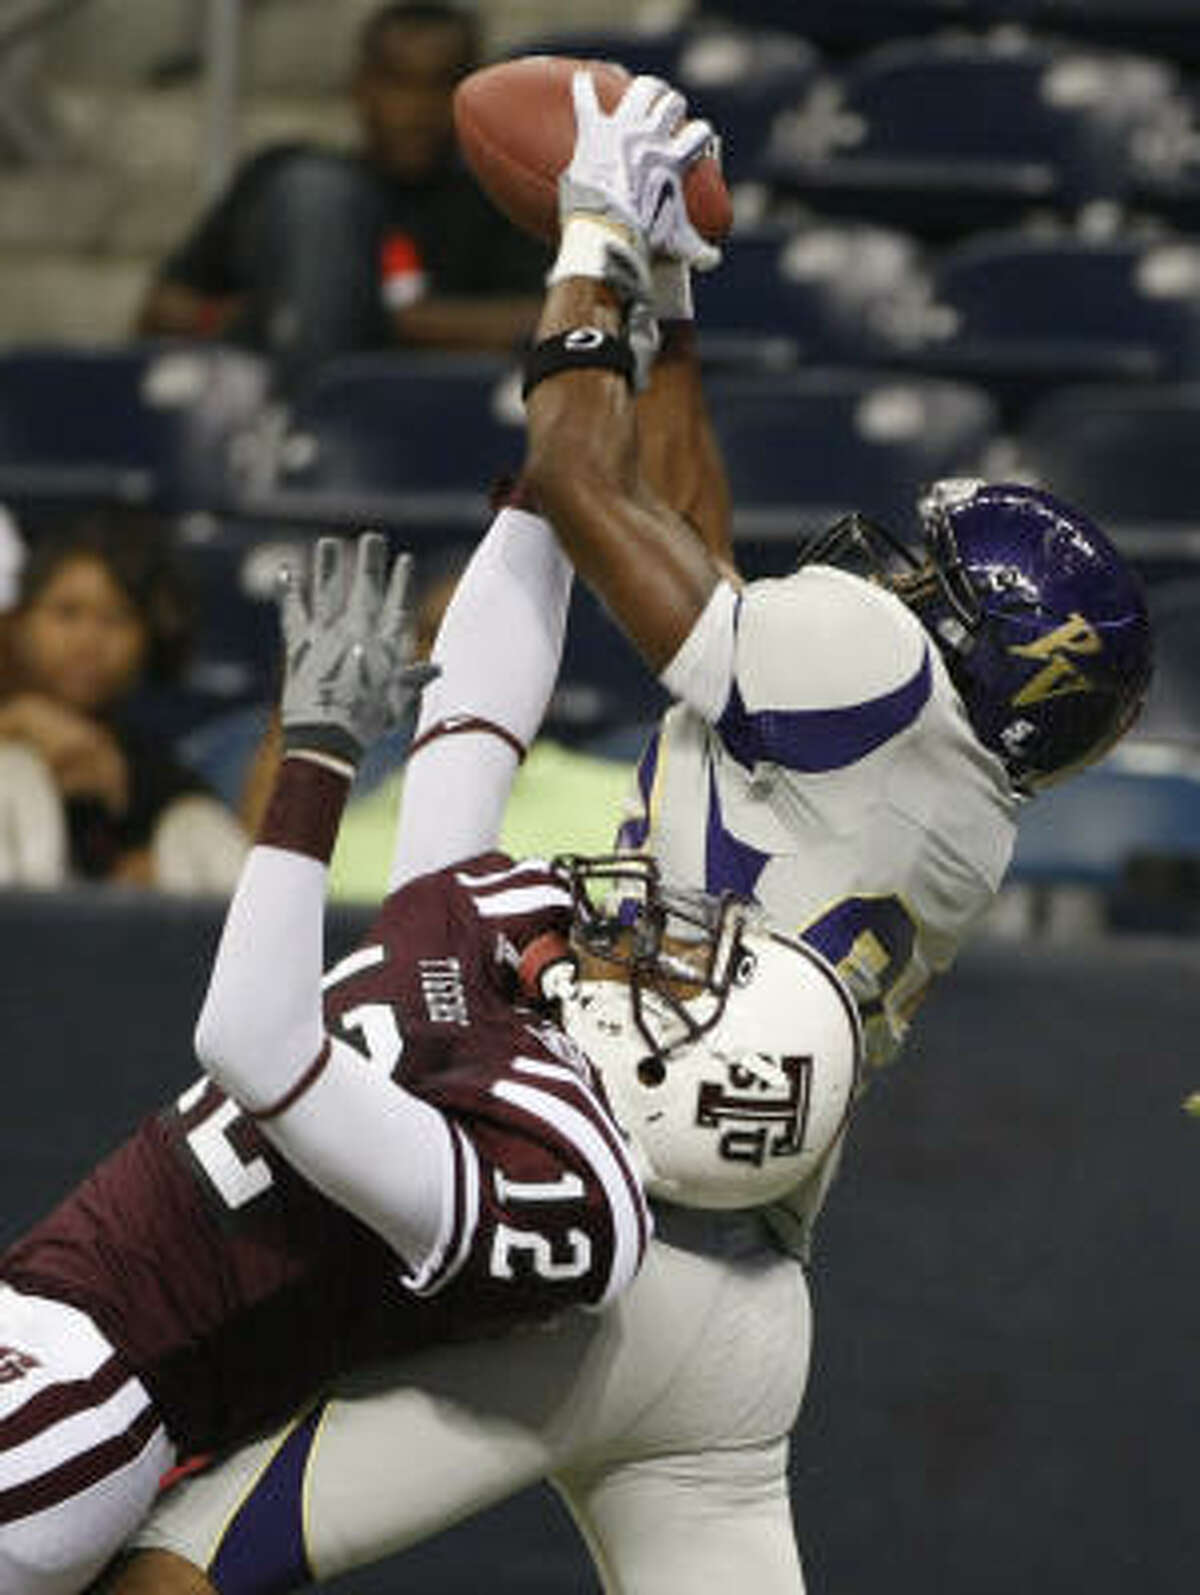 Prairie View A&M's Gabe Osaze-Ediae, top, is able to hold on to the ball for a touchdown as TSU's Anthony Webb tries to defend in the first quarter of Prairie View's 17-7 win.